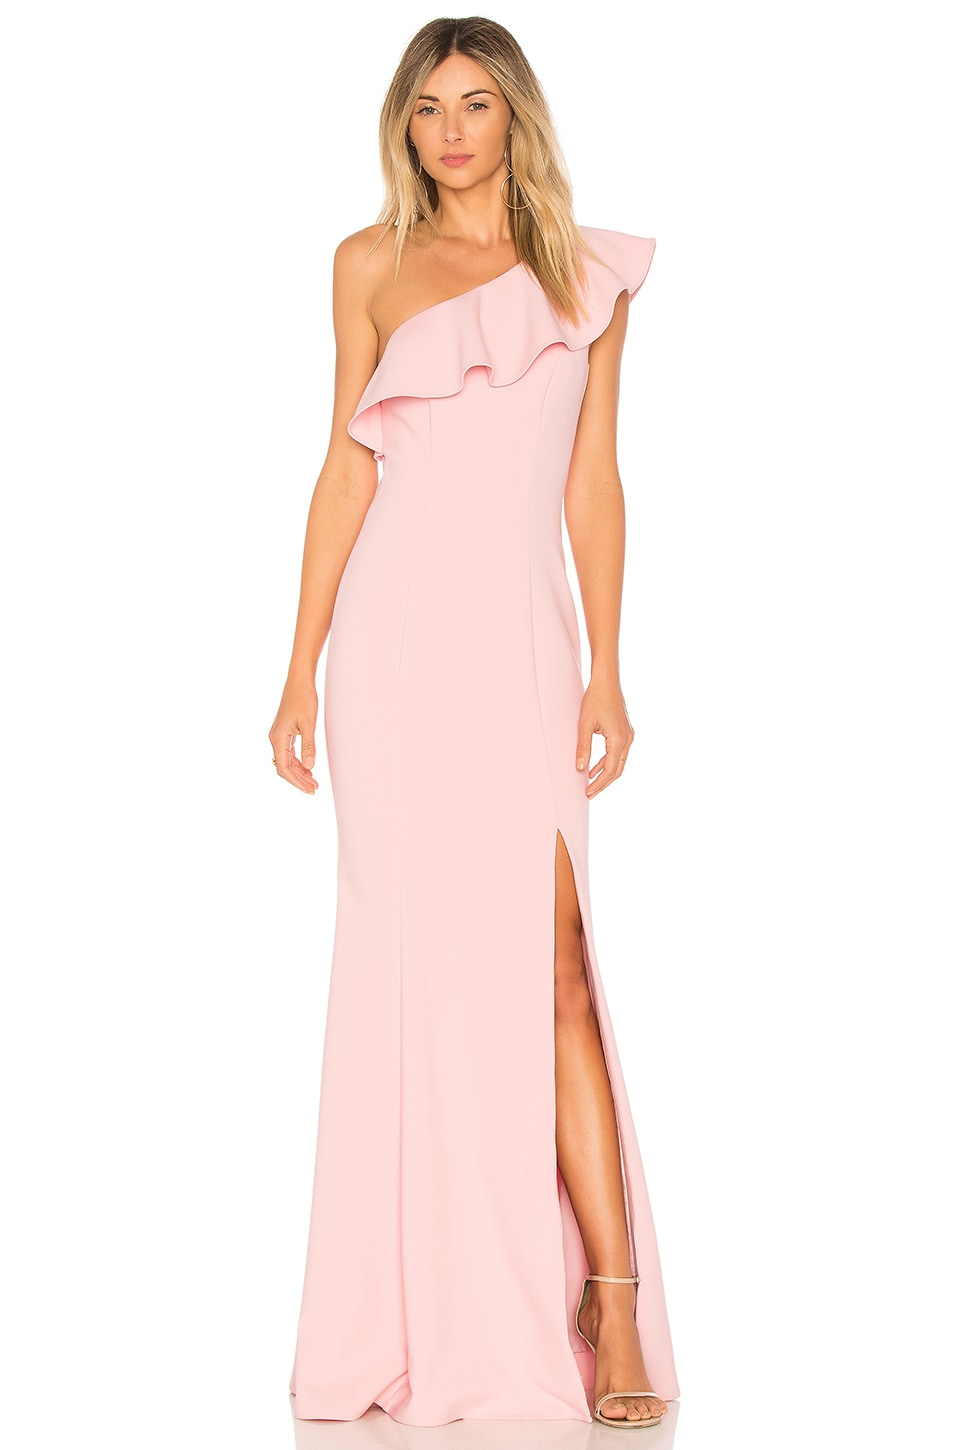 LIKELY Kane Gown in Cameo Pink